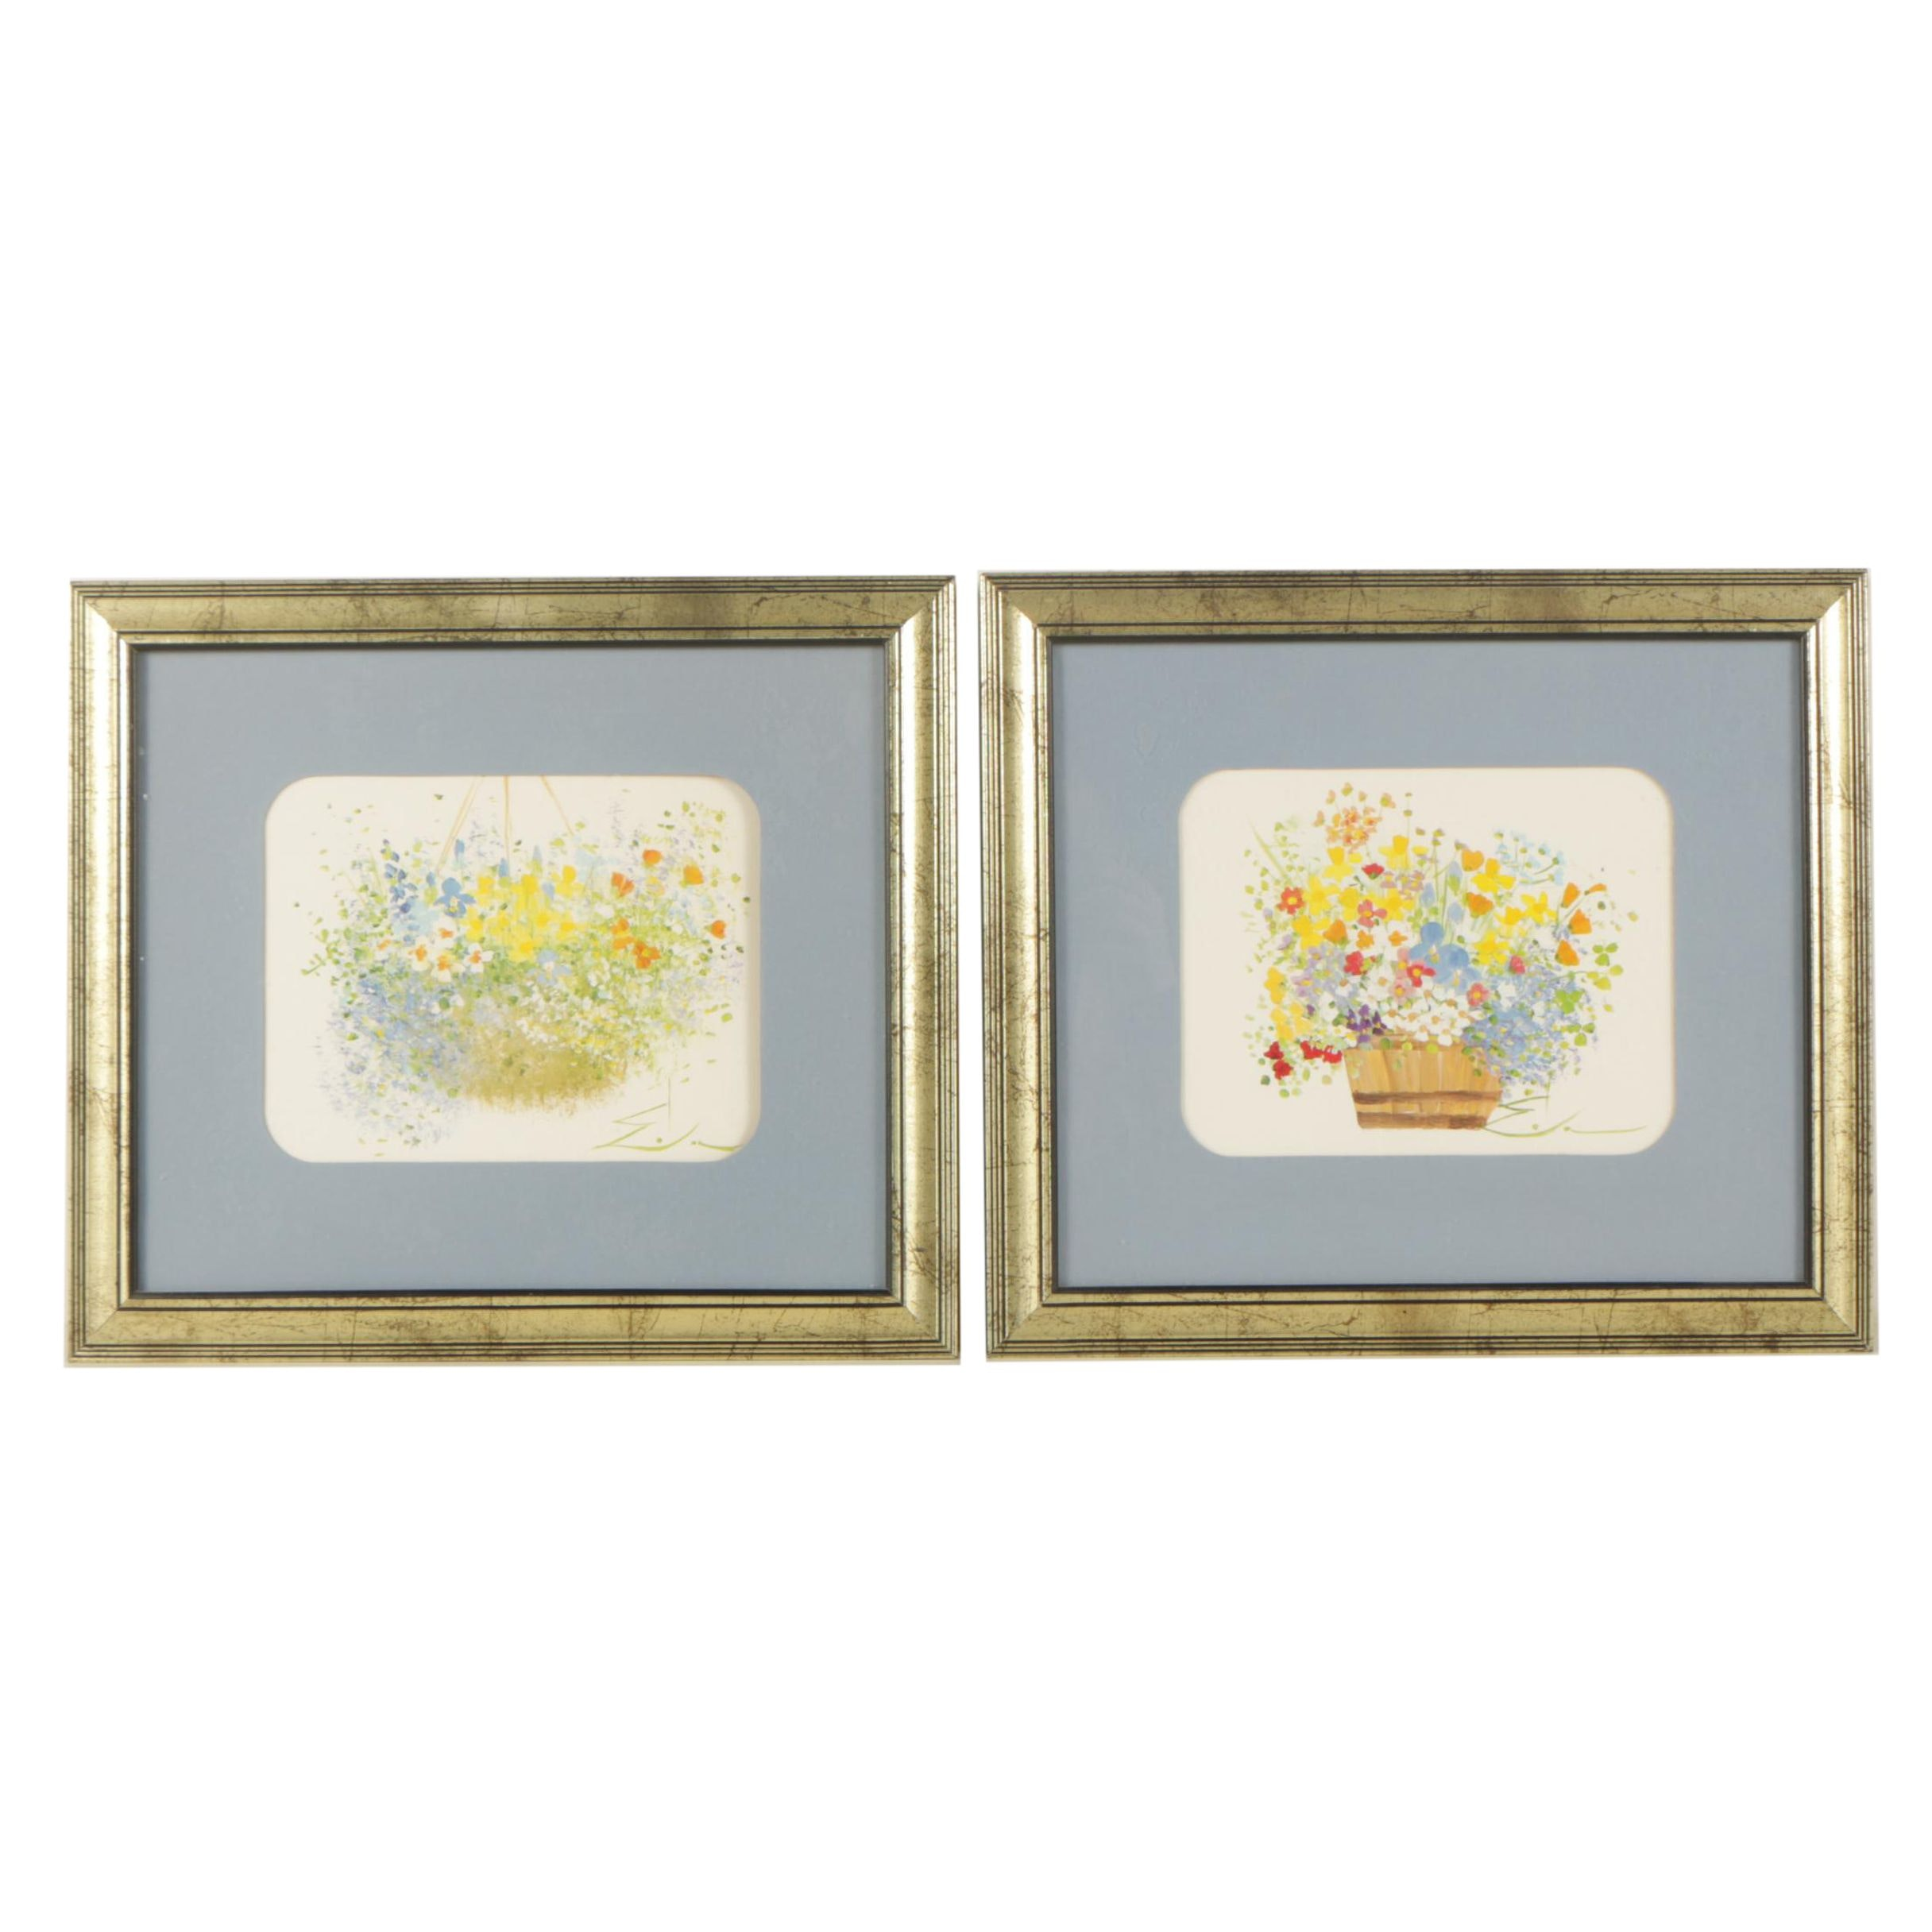 Offset Lithographs After Paintings of Floral Arrangements